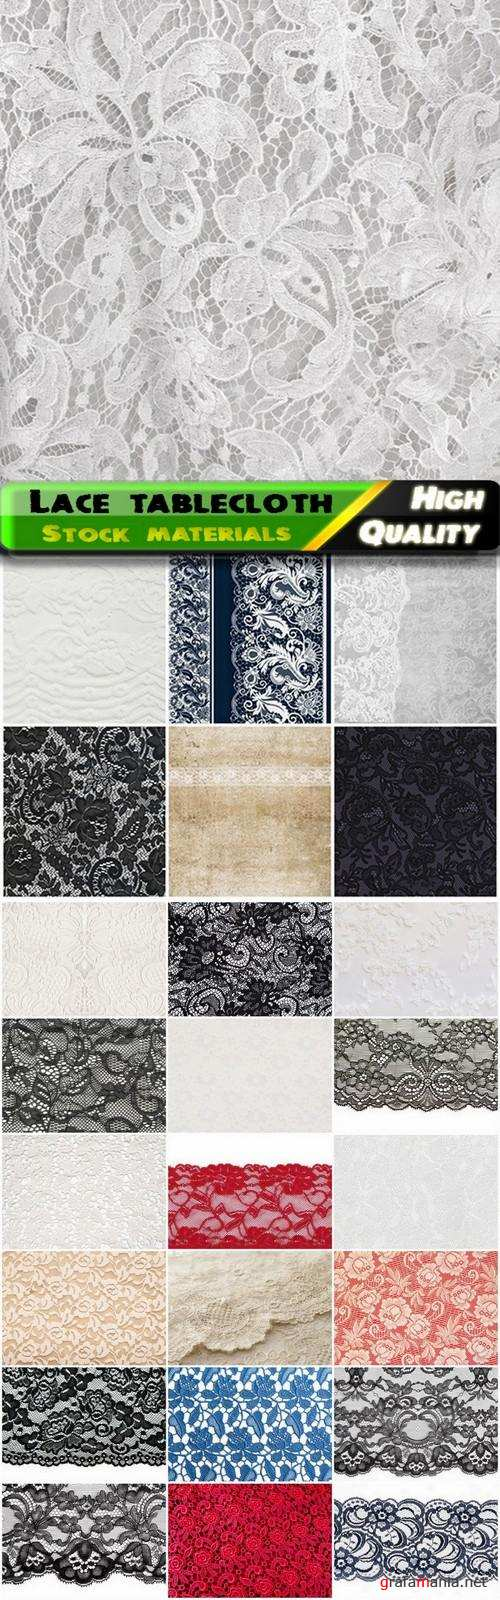 Textures of lace tablecloth with ornaments - 25 HQ Jpg